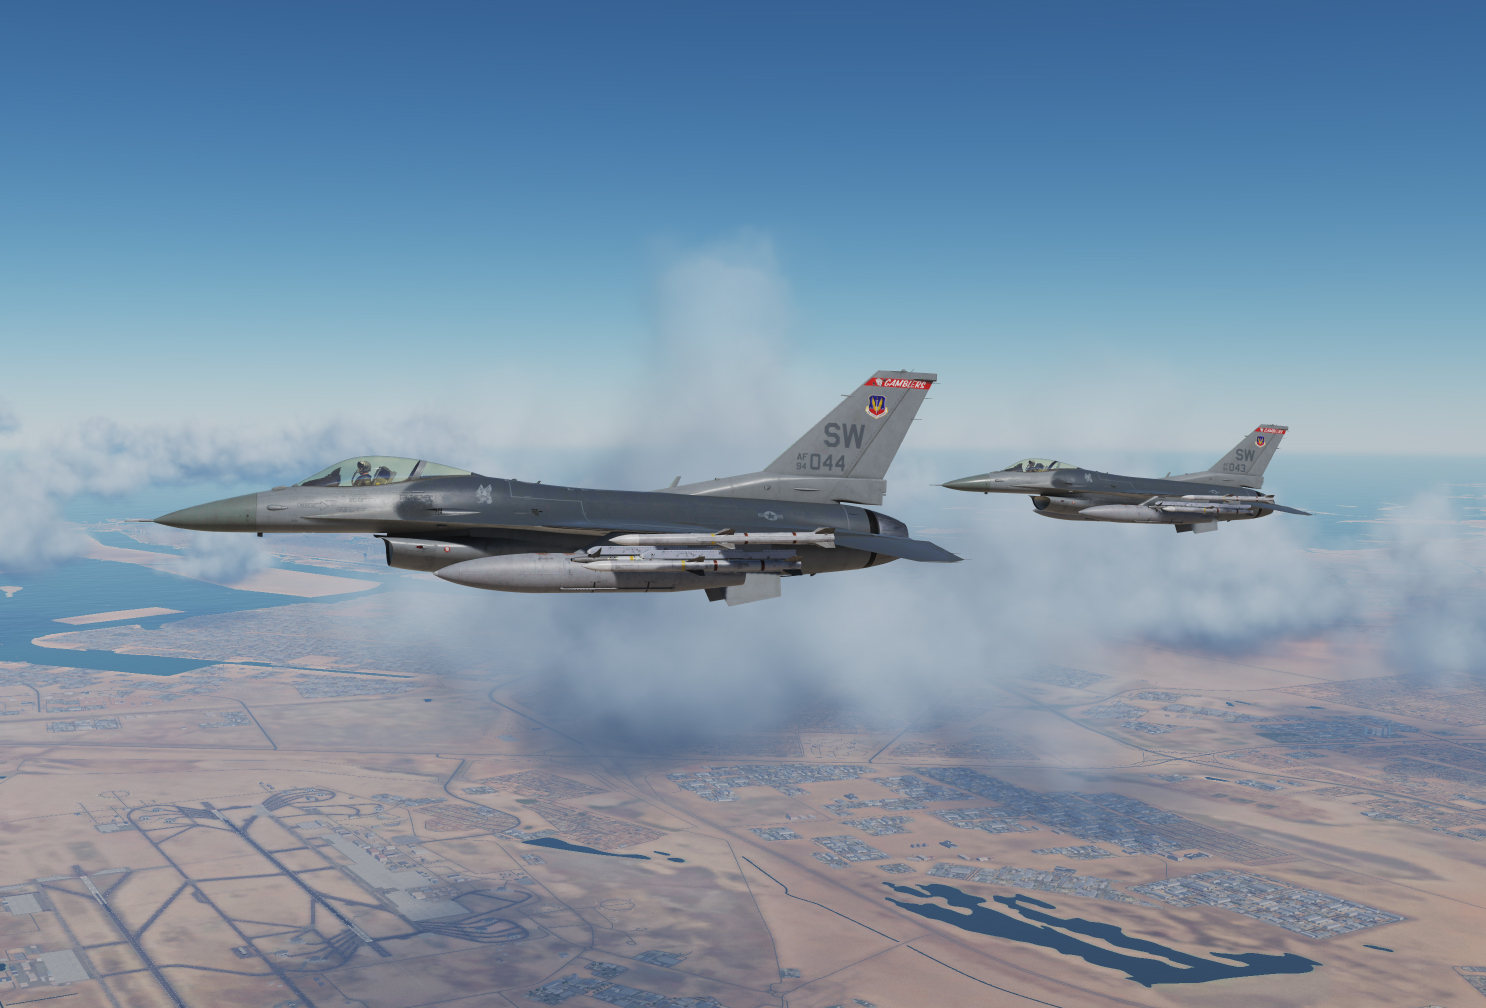 F-16C 77th Fighter Squadron